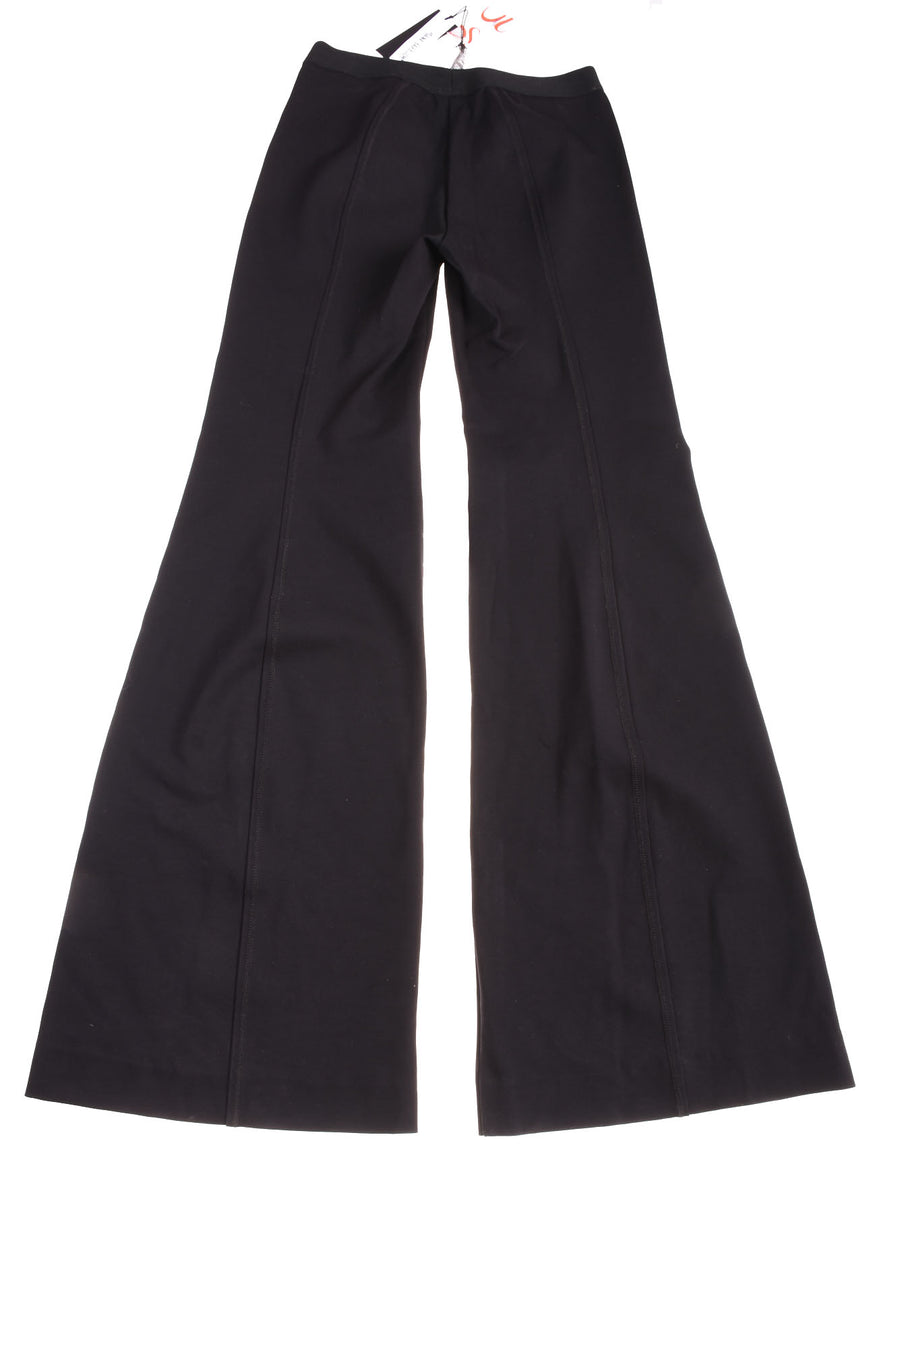 NEW Yoana Baraschi Women's Pants Medium Black